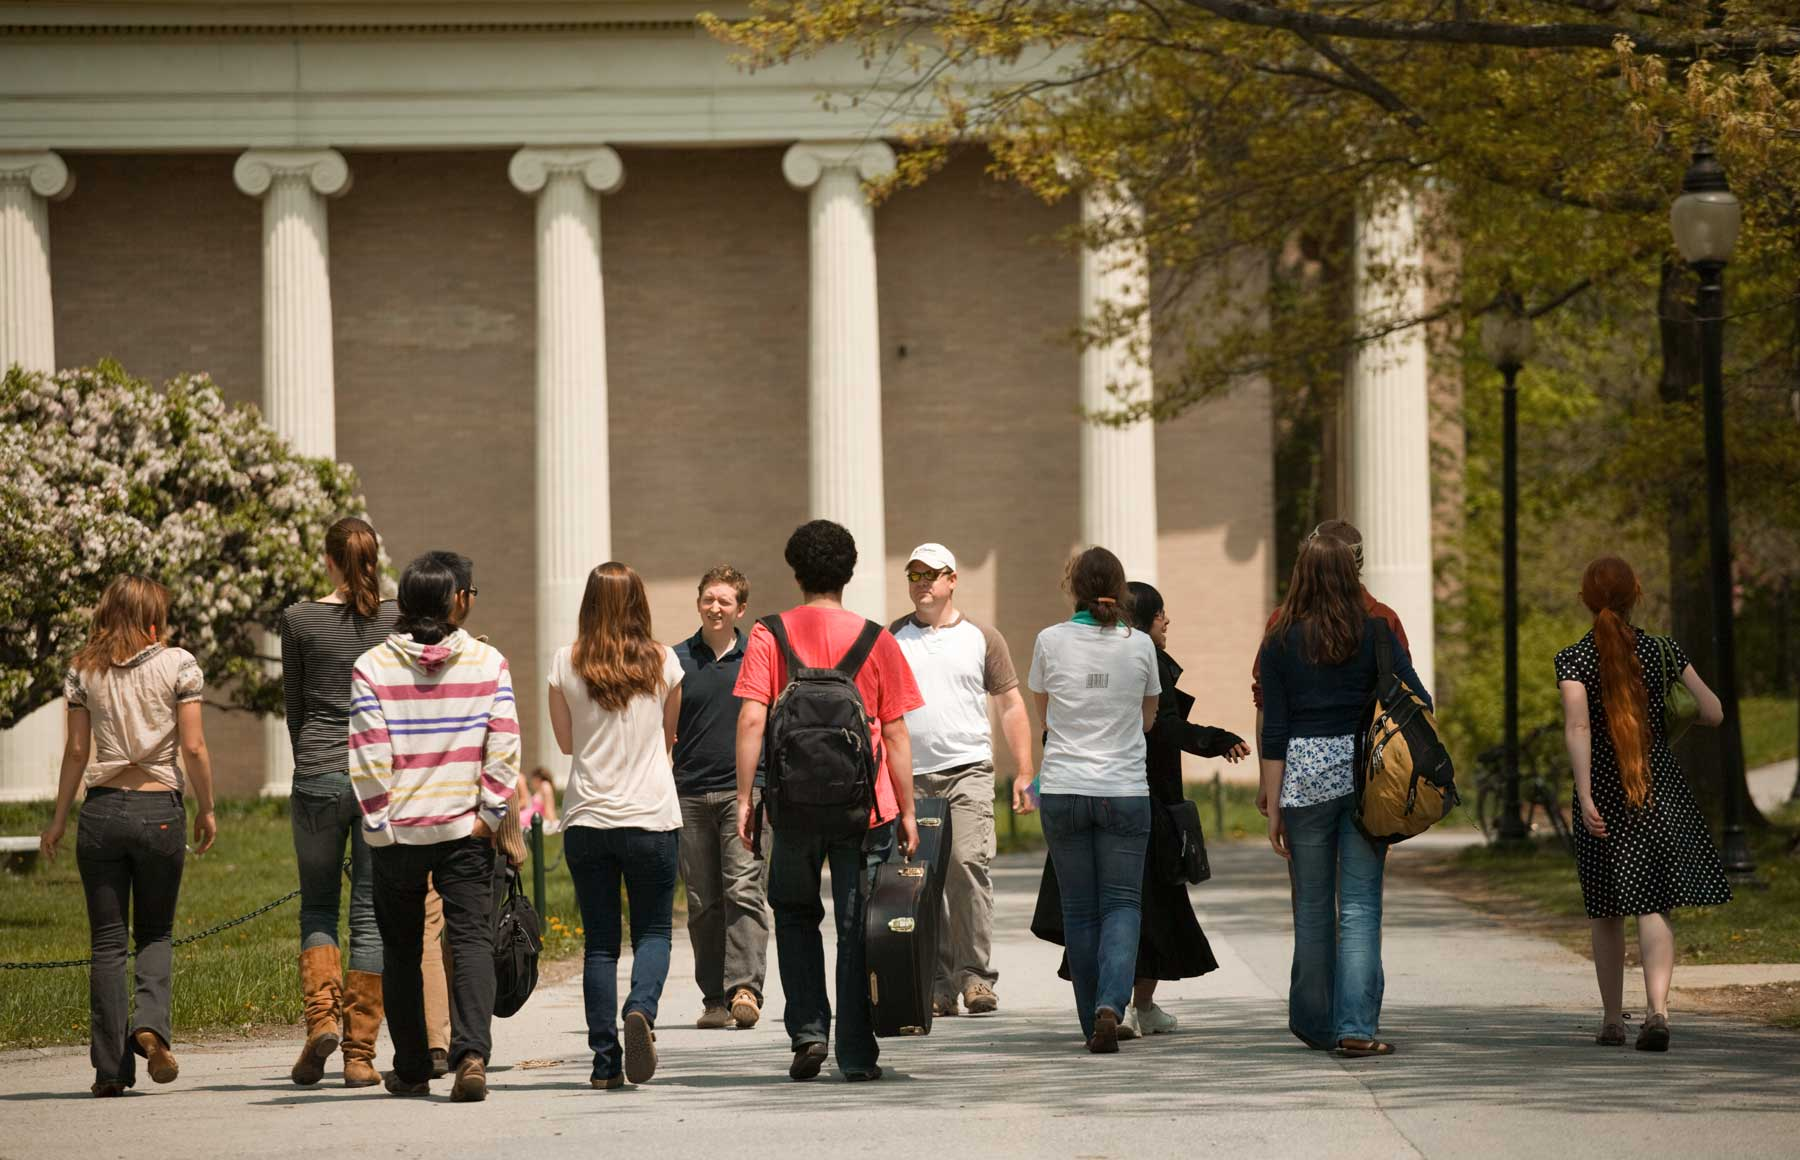 college life is about making adjustments See the link to campus life and other resources below  feel you are adjusting  well to university life, you may want to consider making an appointment to speak .